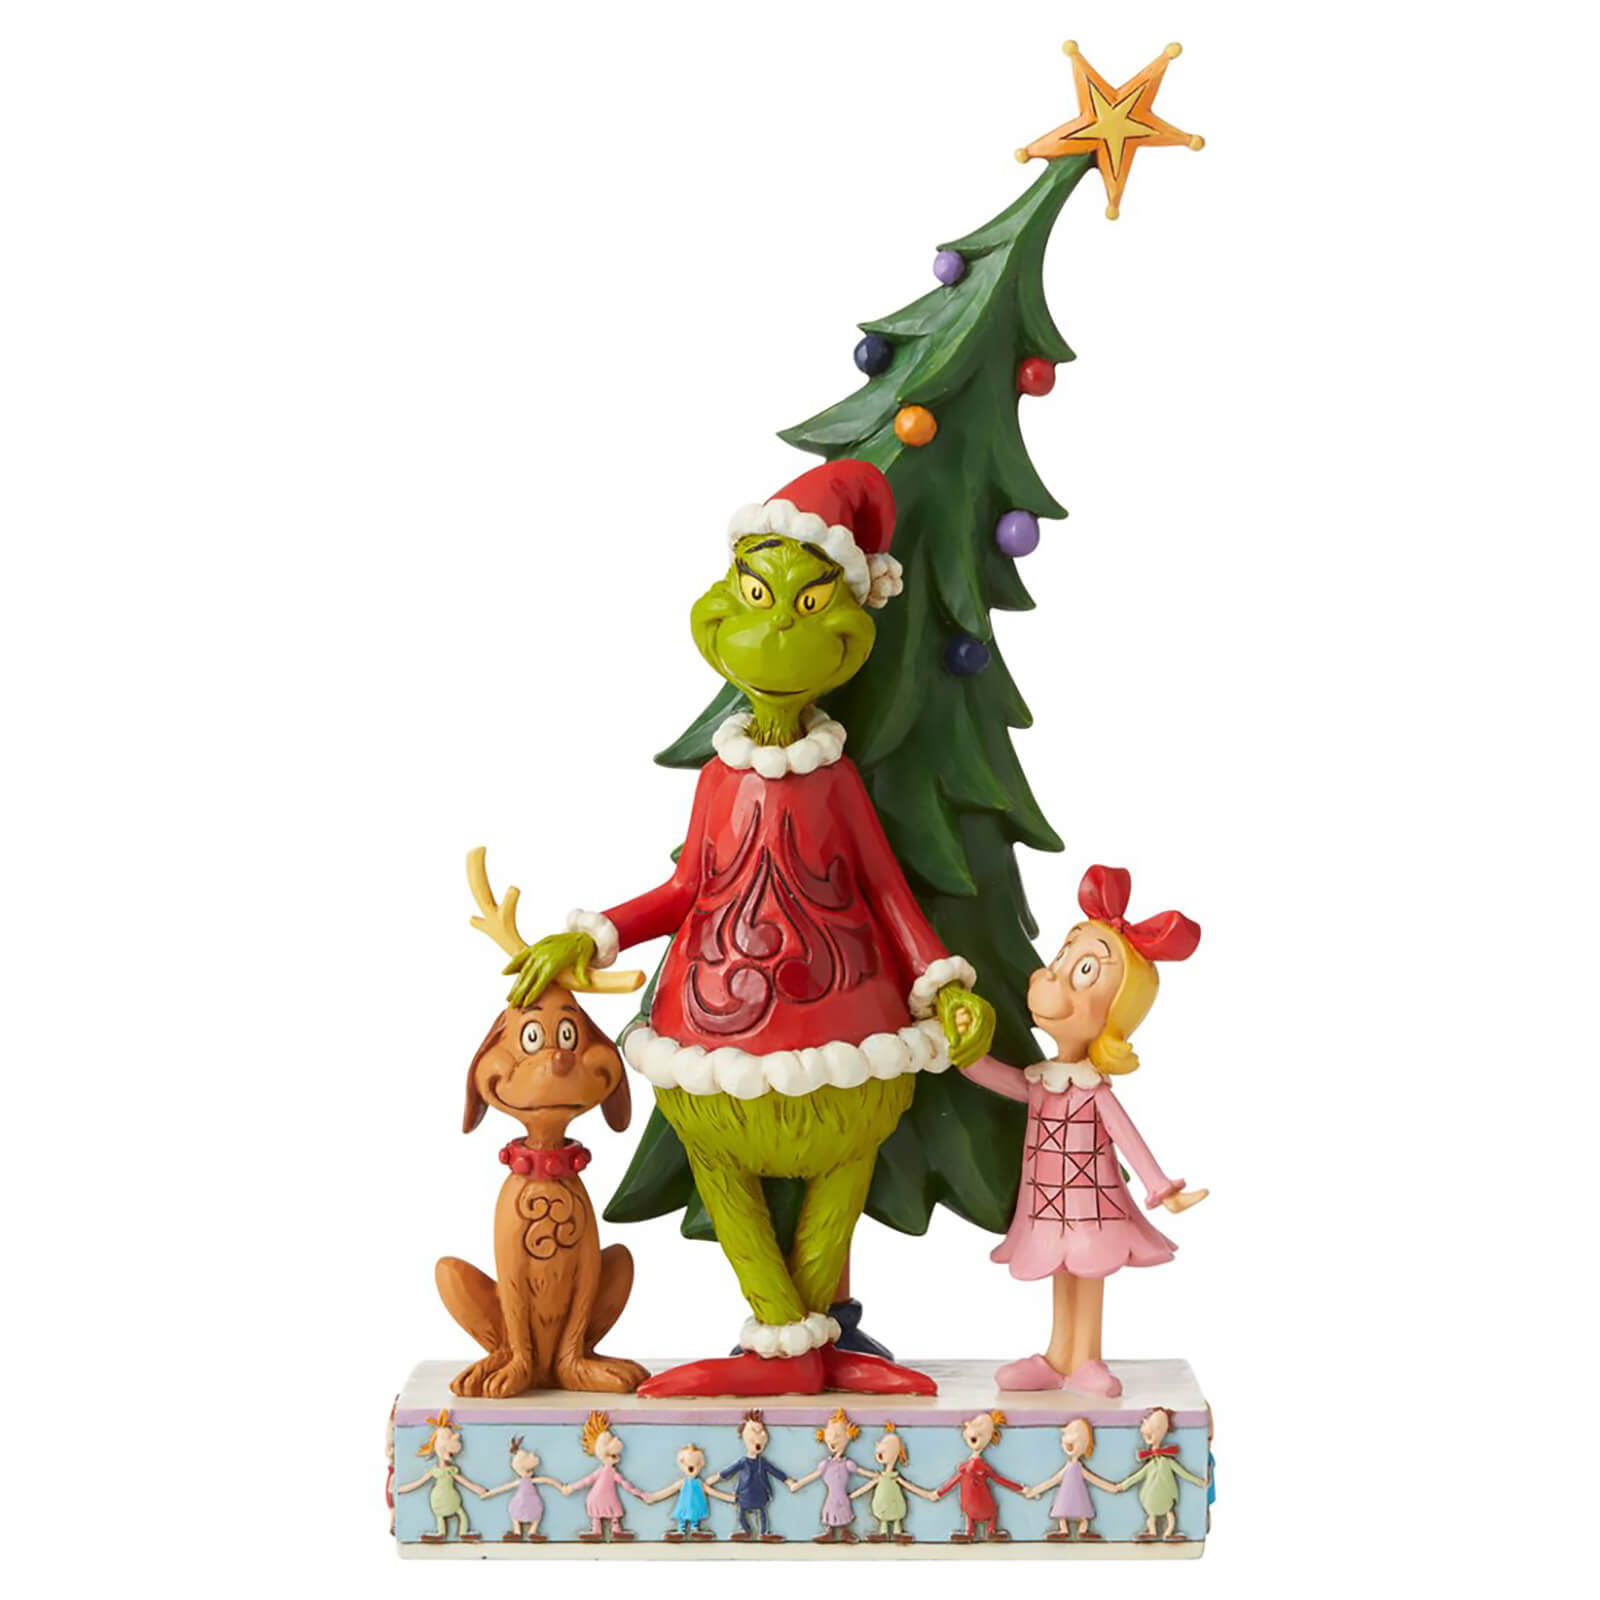 Image of The Grinch By Jim Shore Grinch Decorating Tree Fig